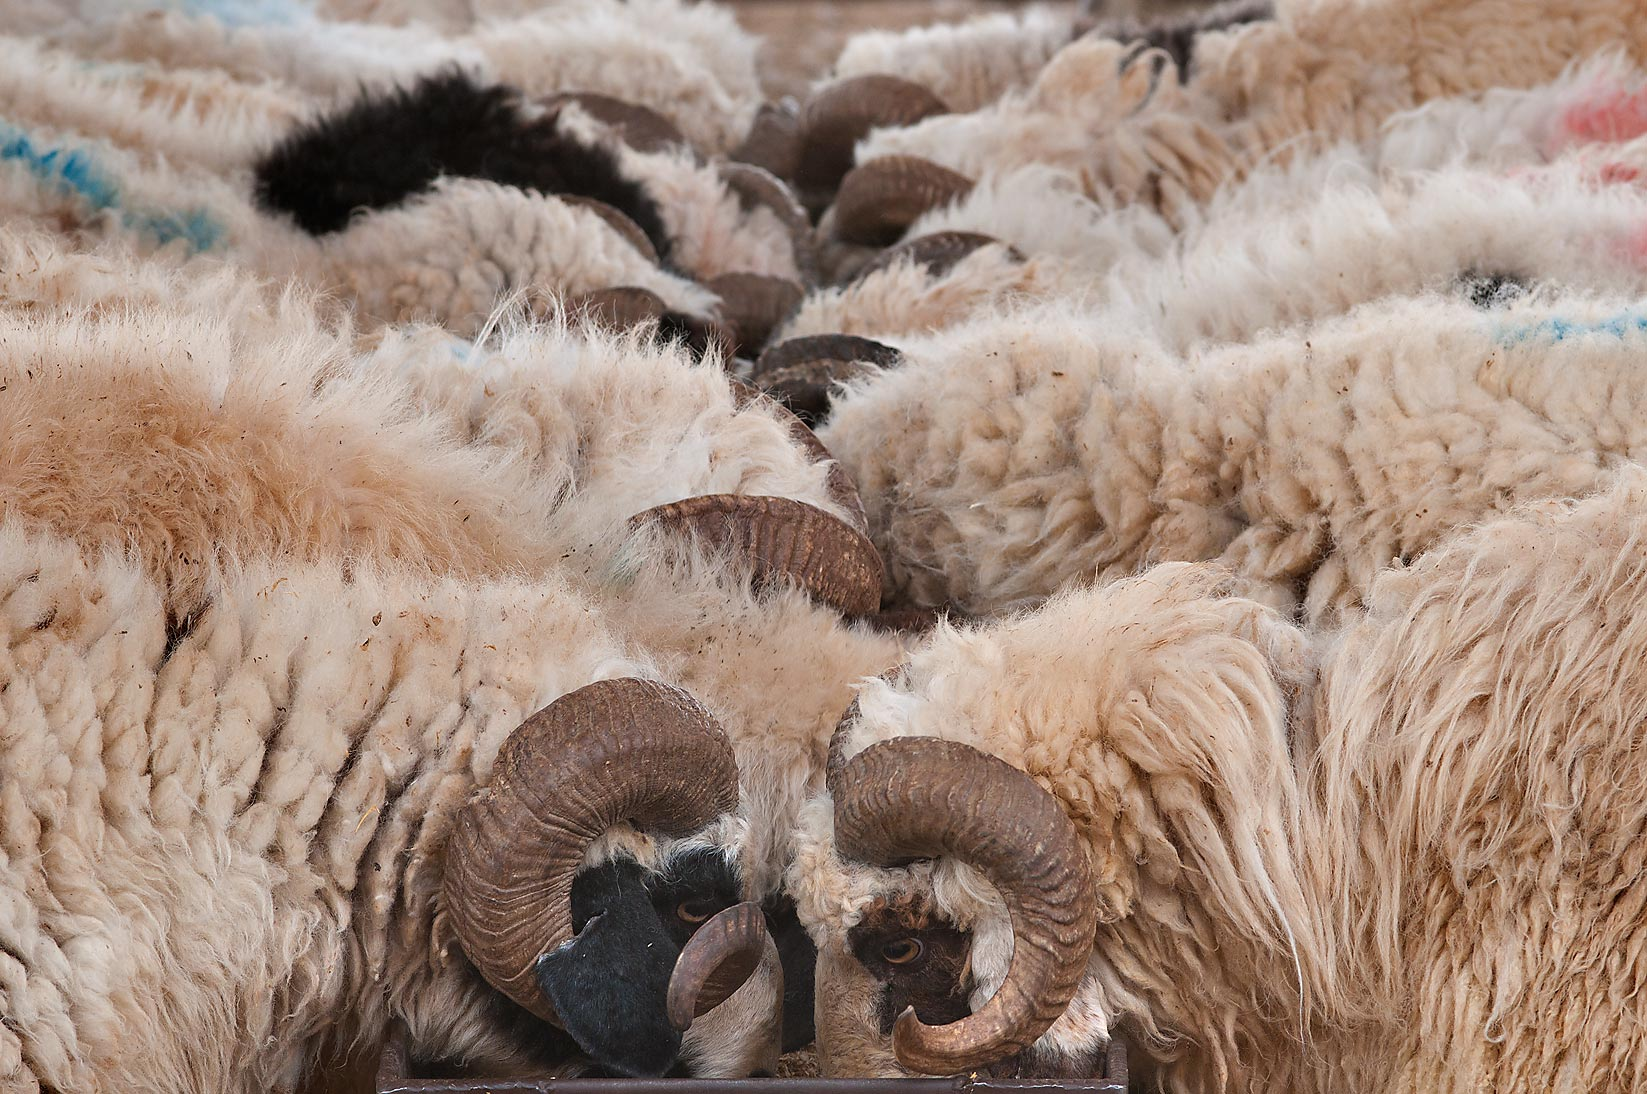 Rams feeding in a pen in Sheep Market, Wholesale Markets area. Doha, Qatar